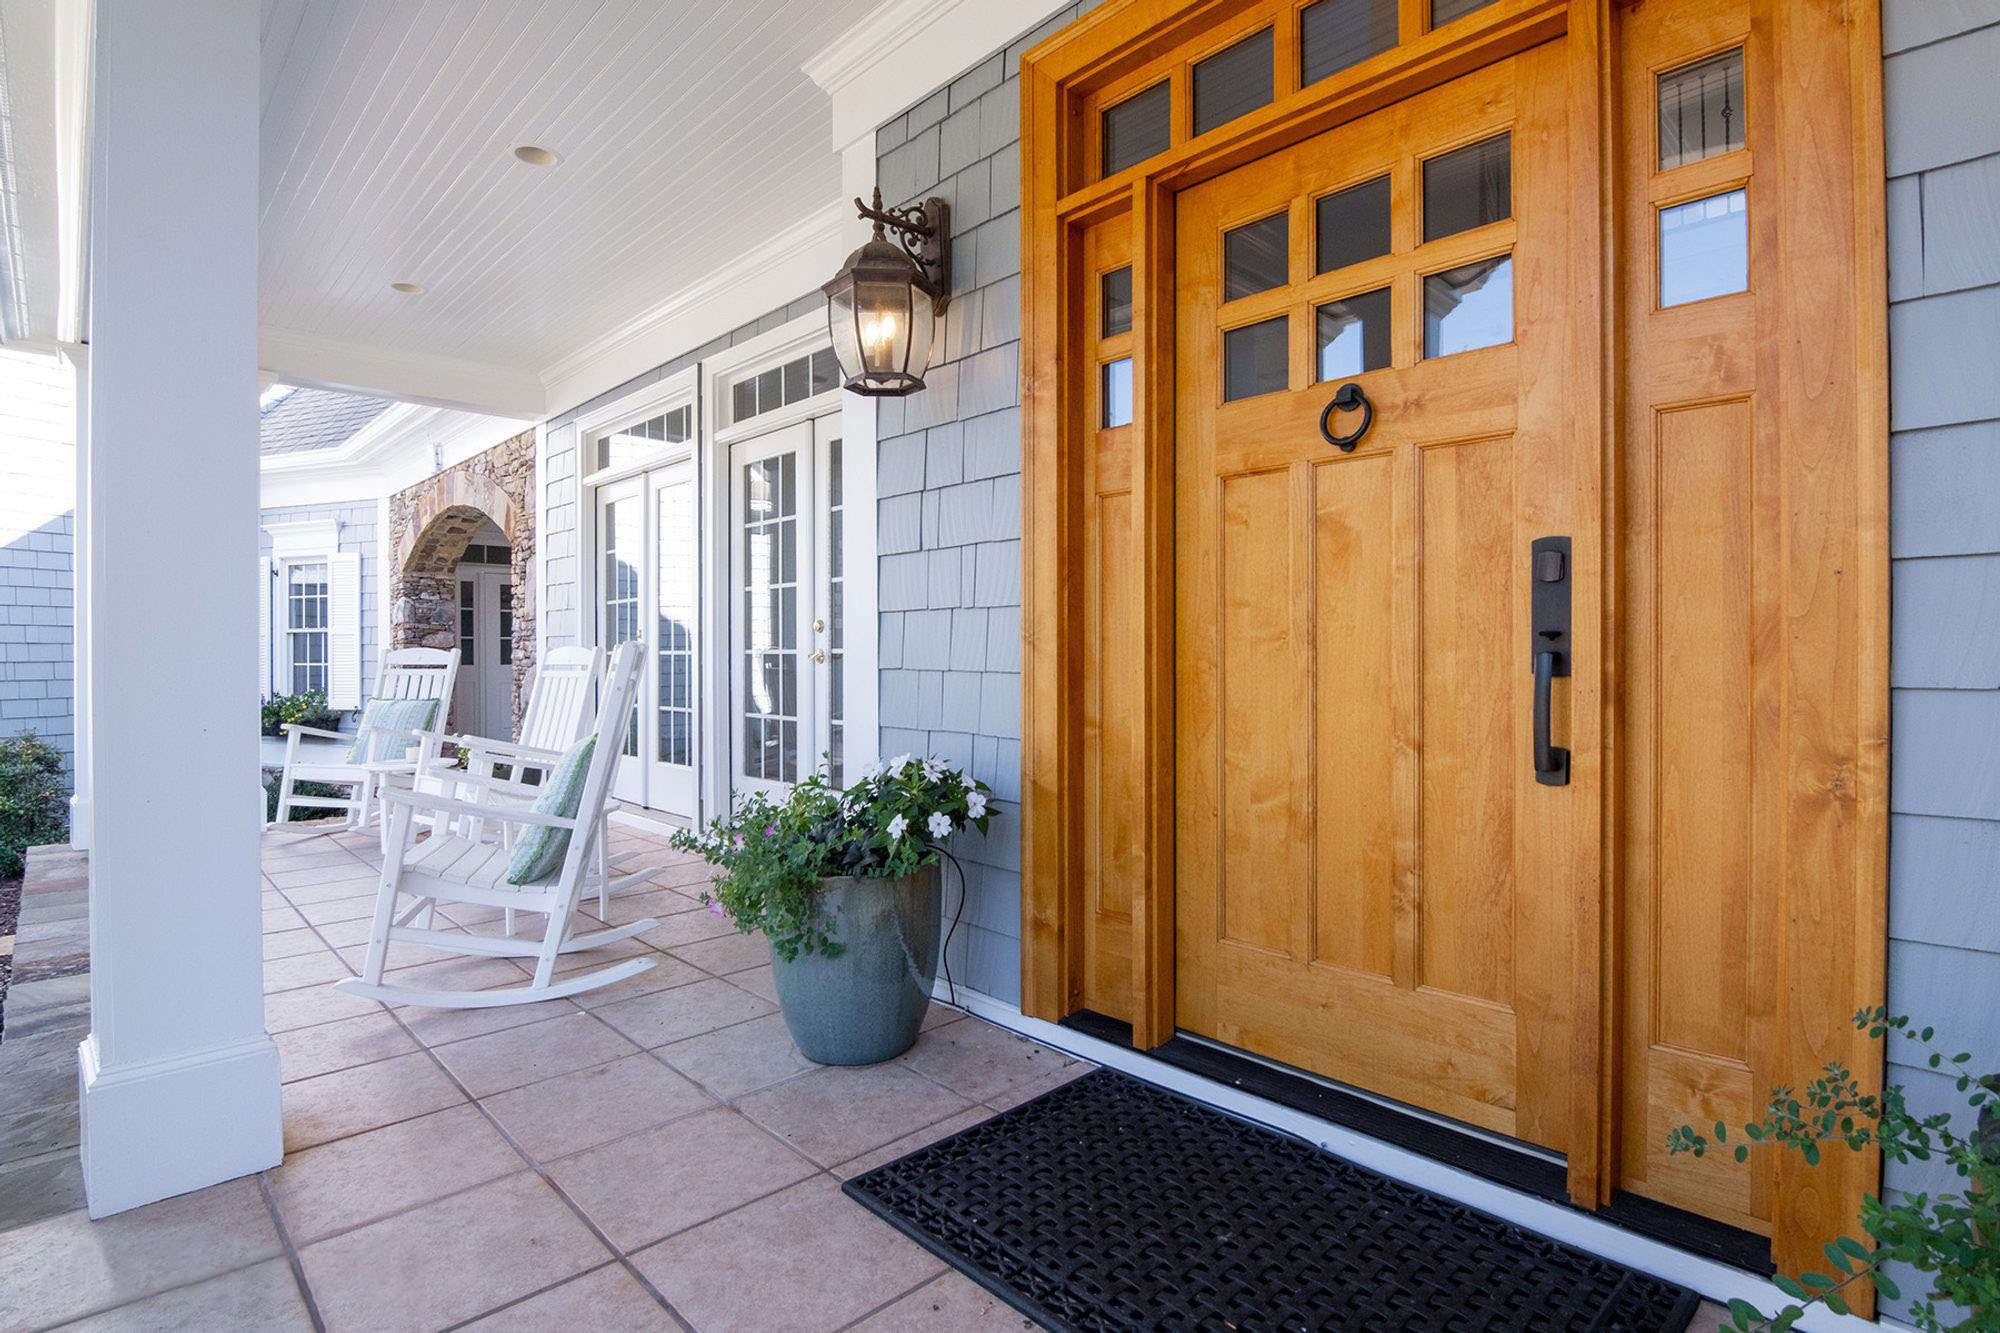 Light blue cedar shake siding with a natural wood front door. Side and top glass transoms with black door hardware.